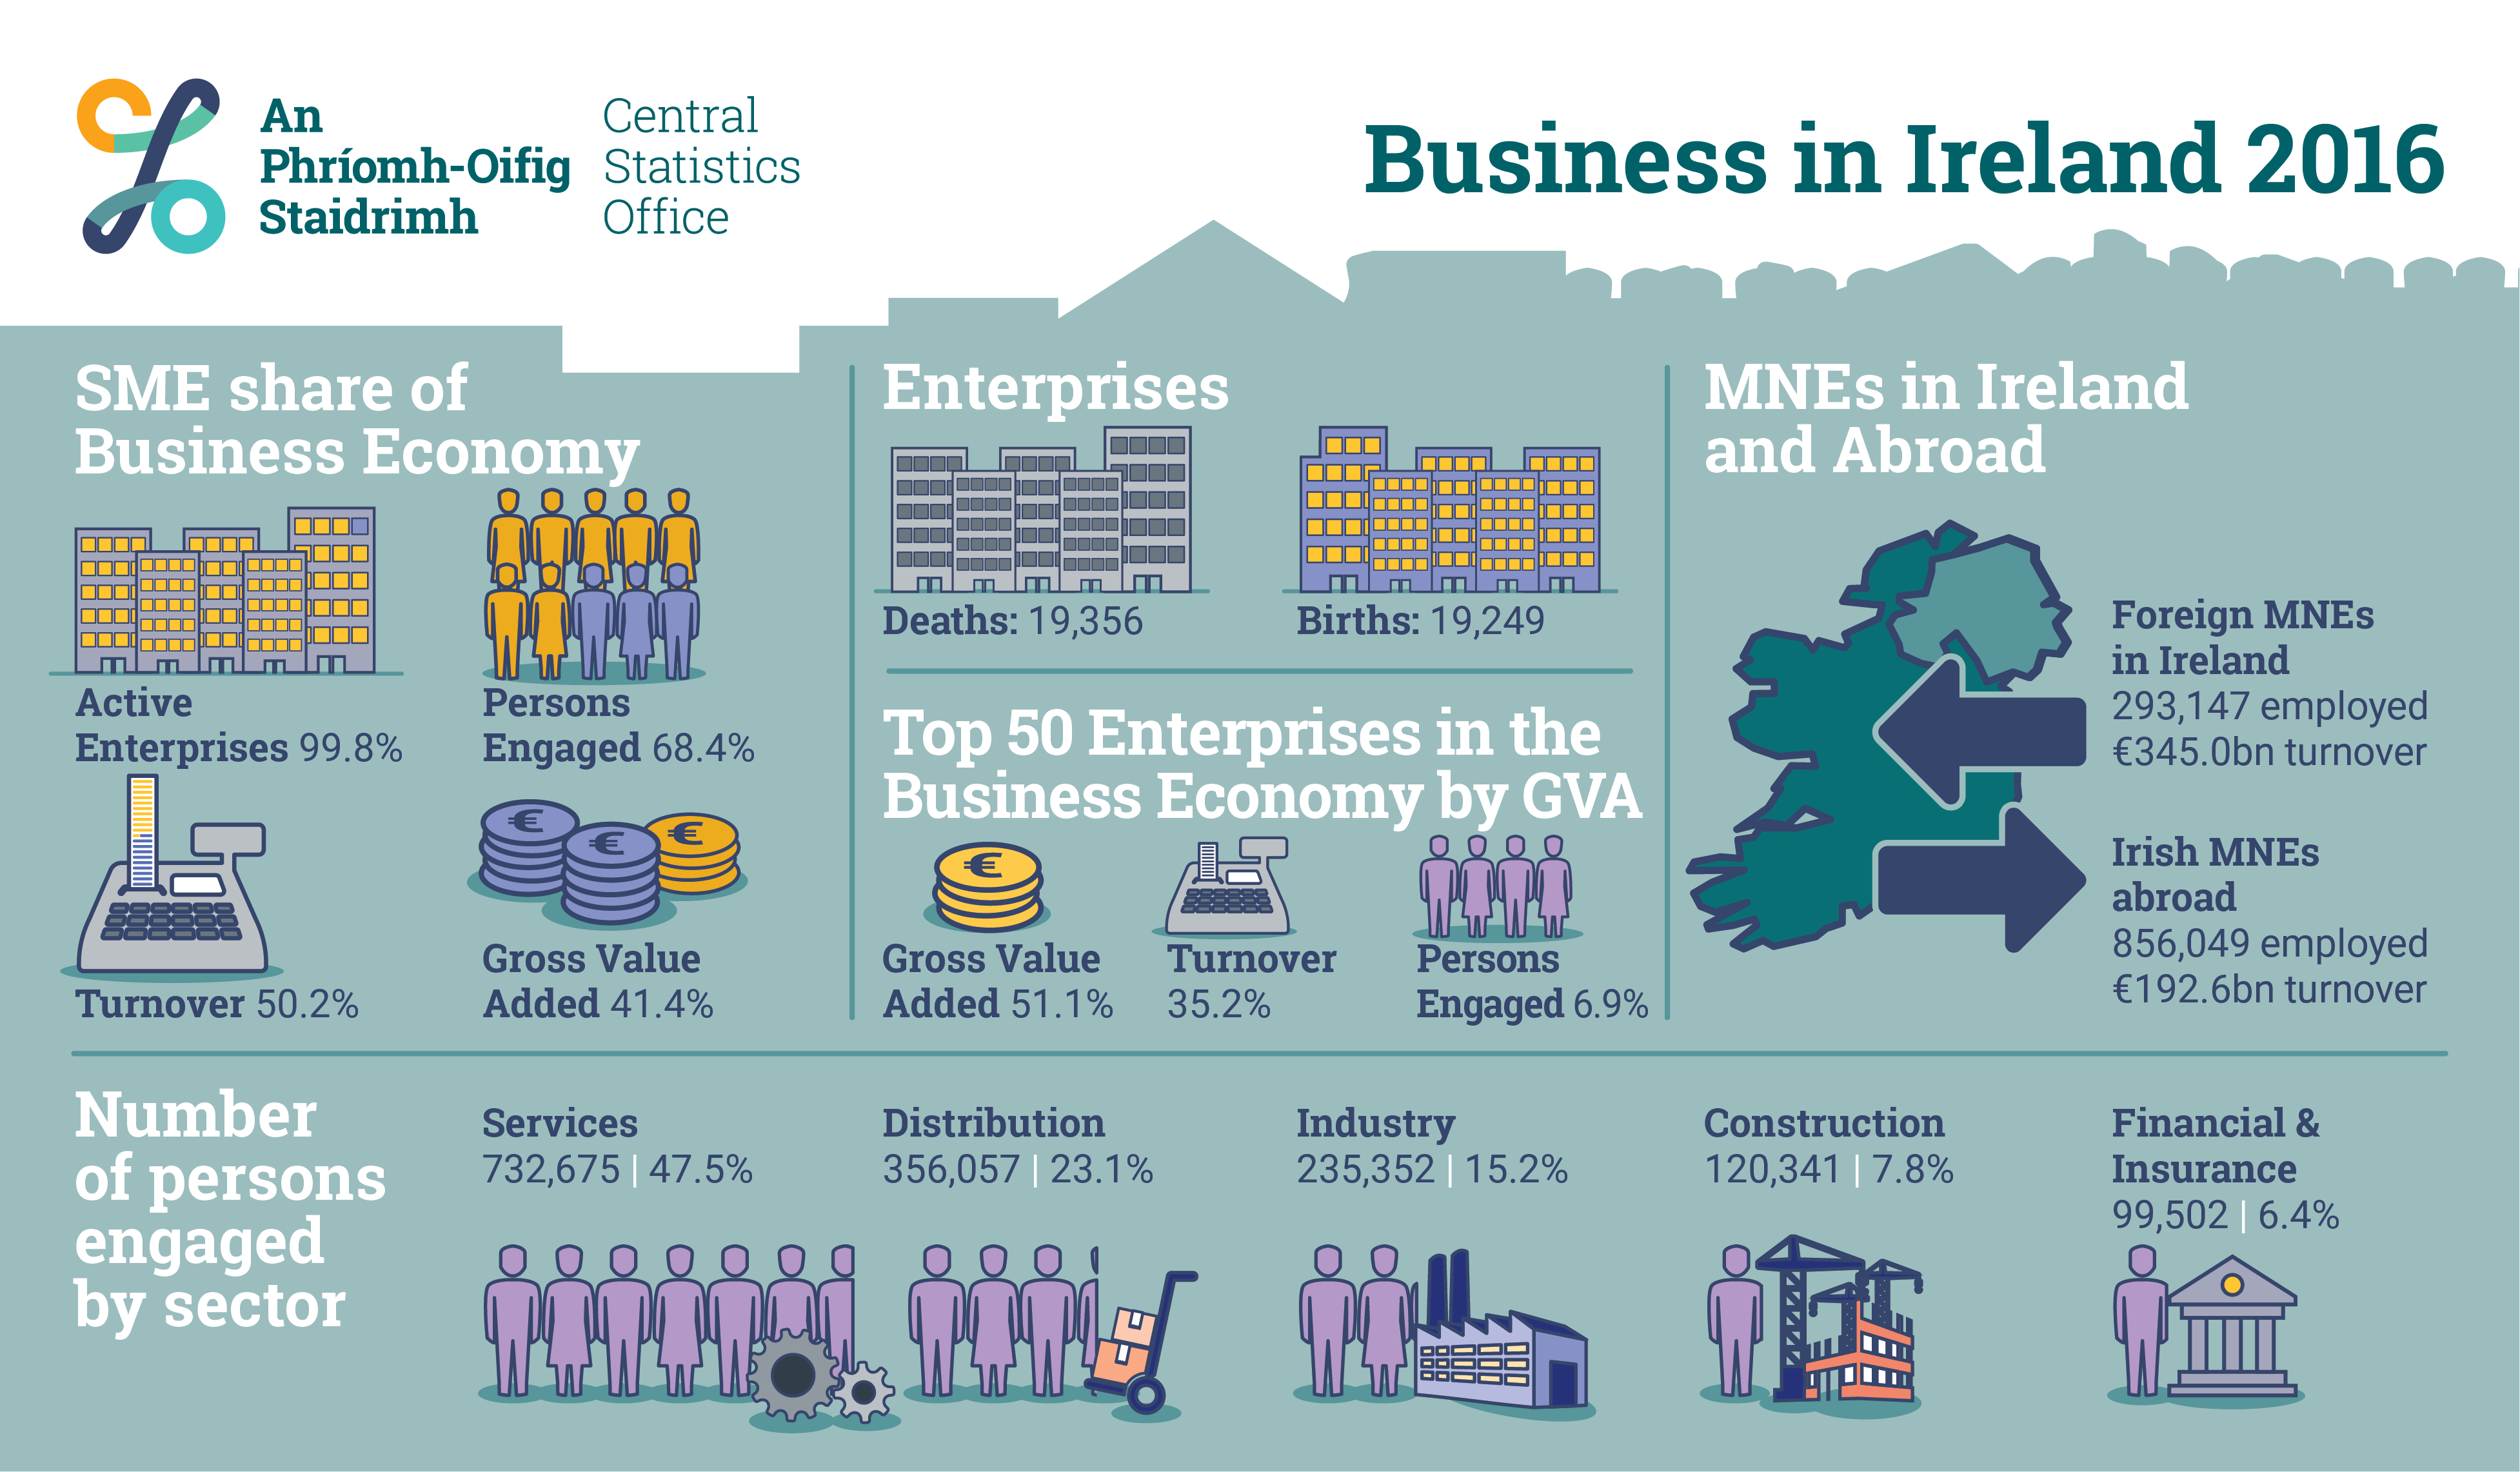 Business in Ireland 2016 Infographic image